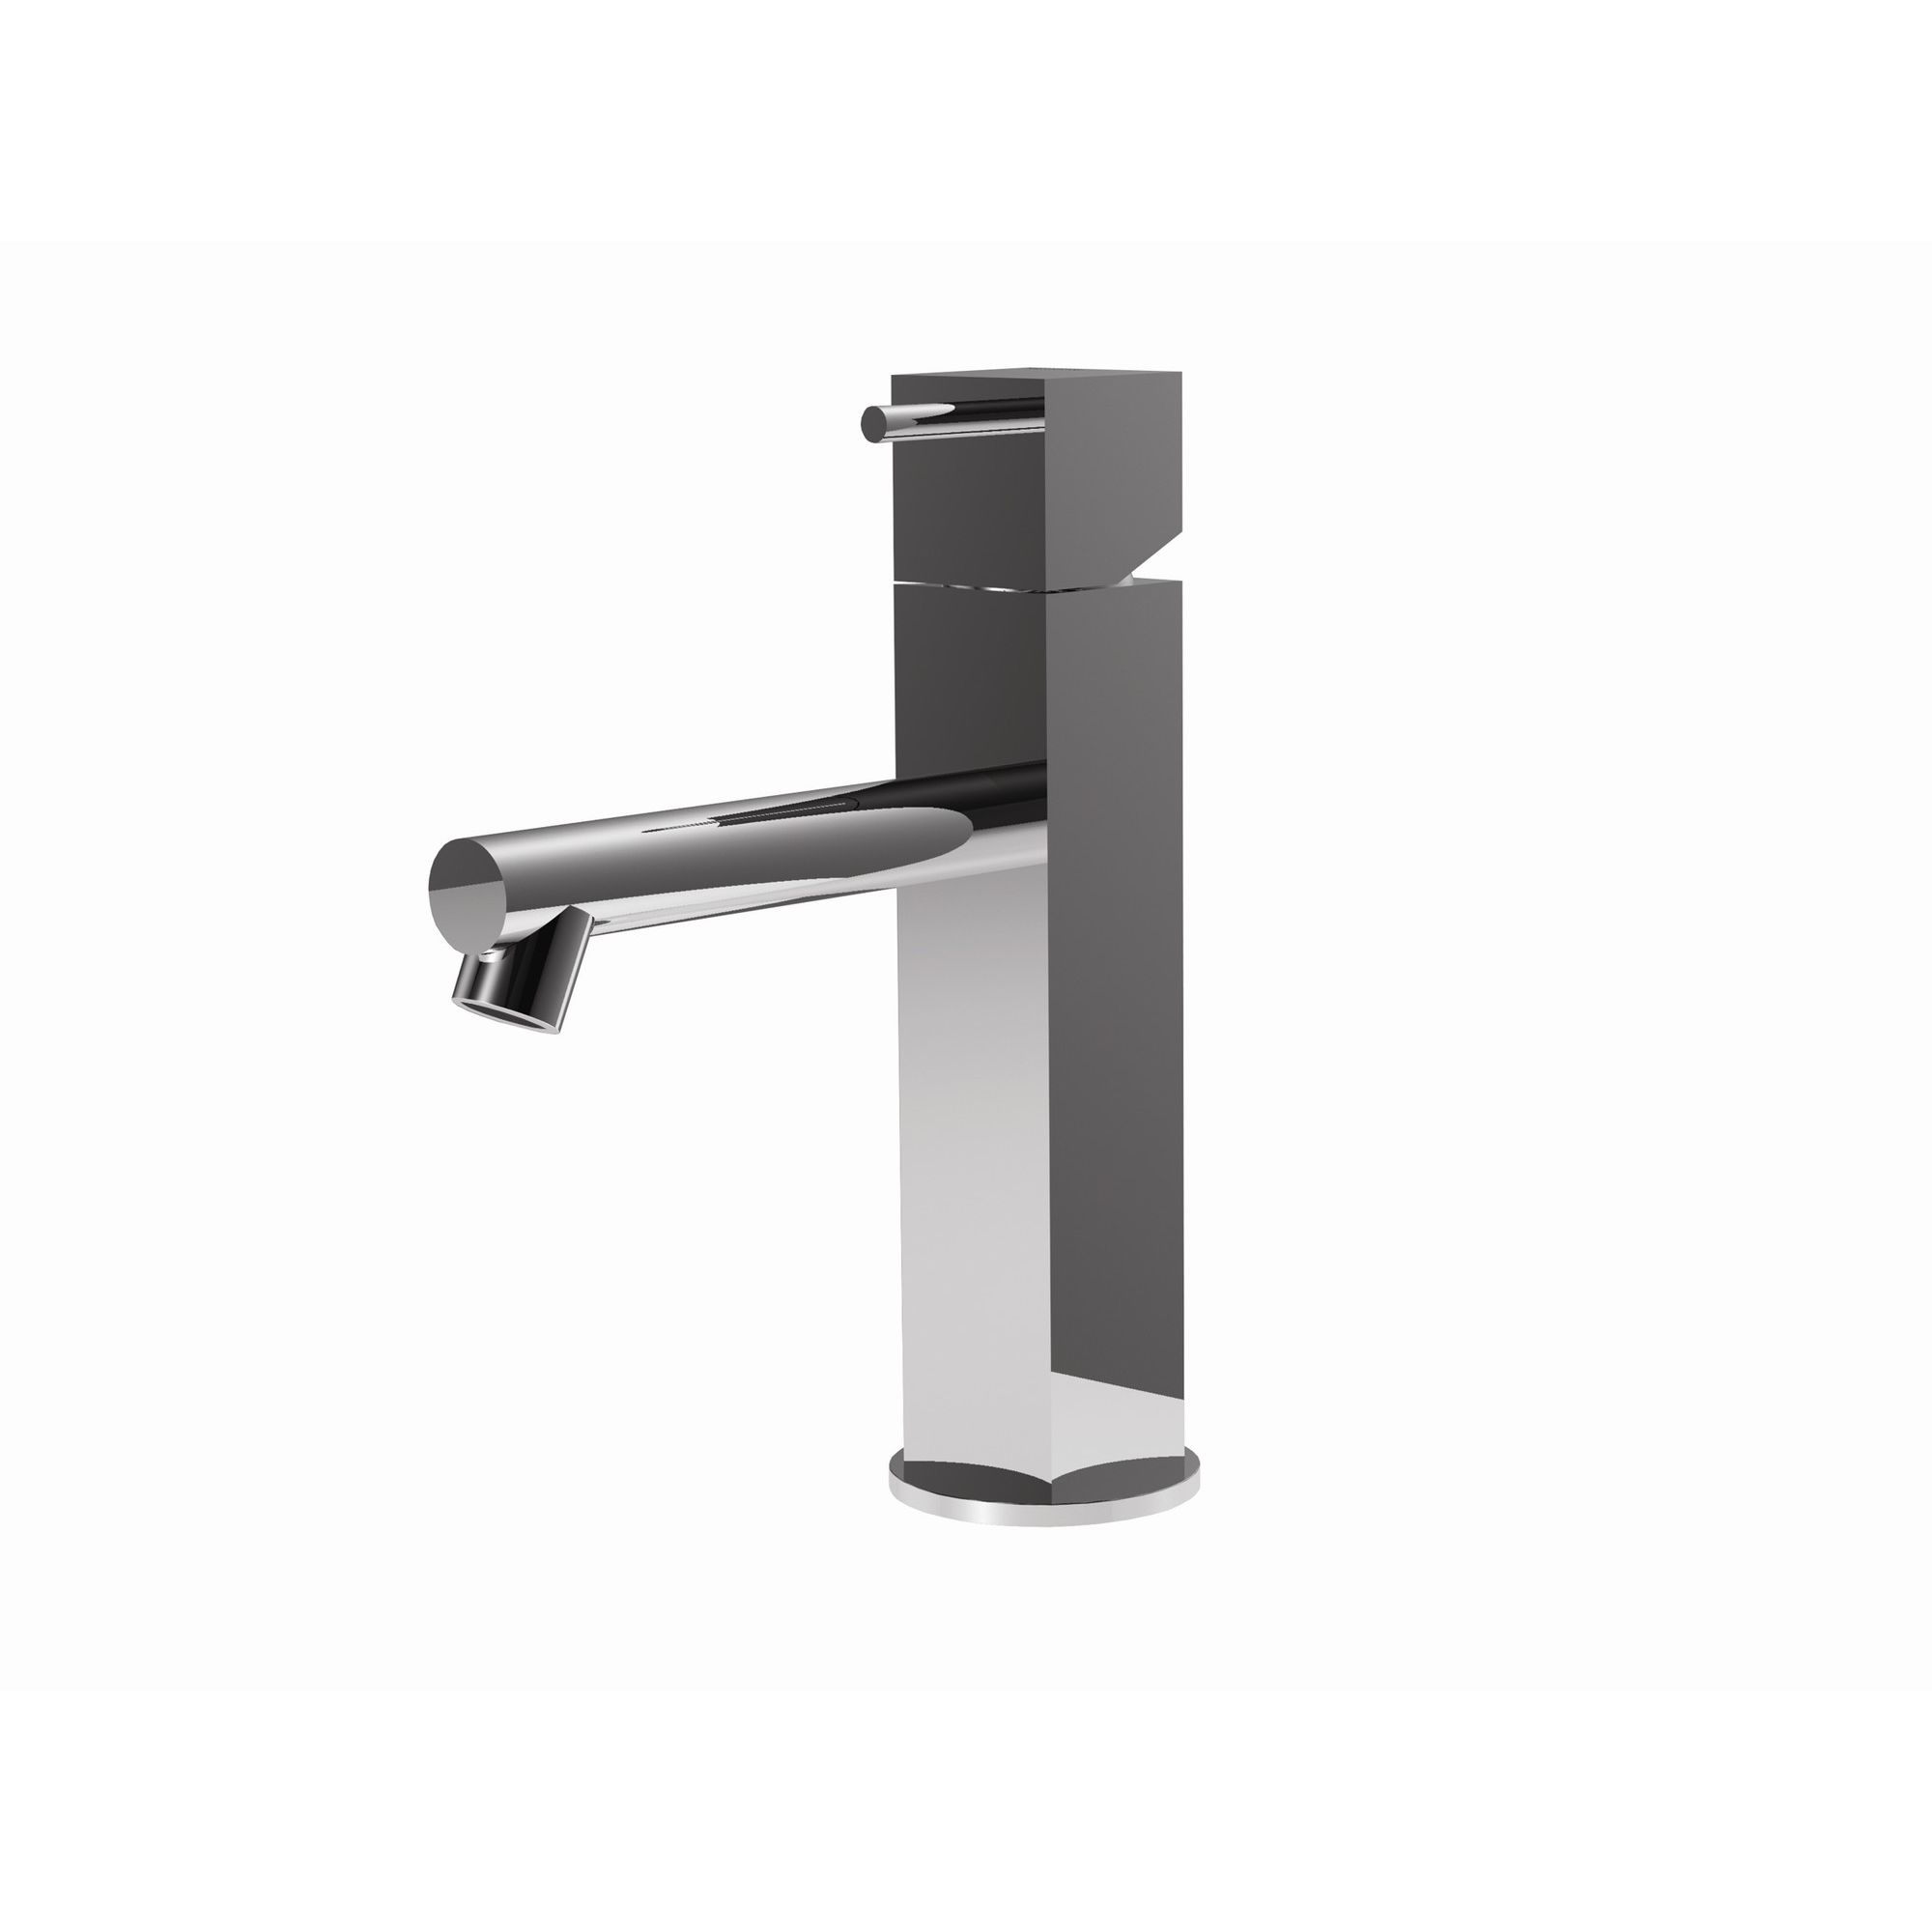 Rubinetterie Ritmonio Latoperlato Bathroom Sink Mixer Tap in Chrome at Tesco Direct